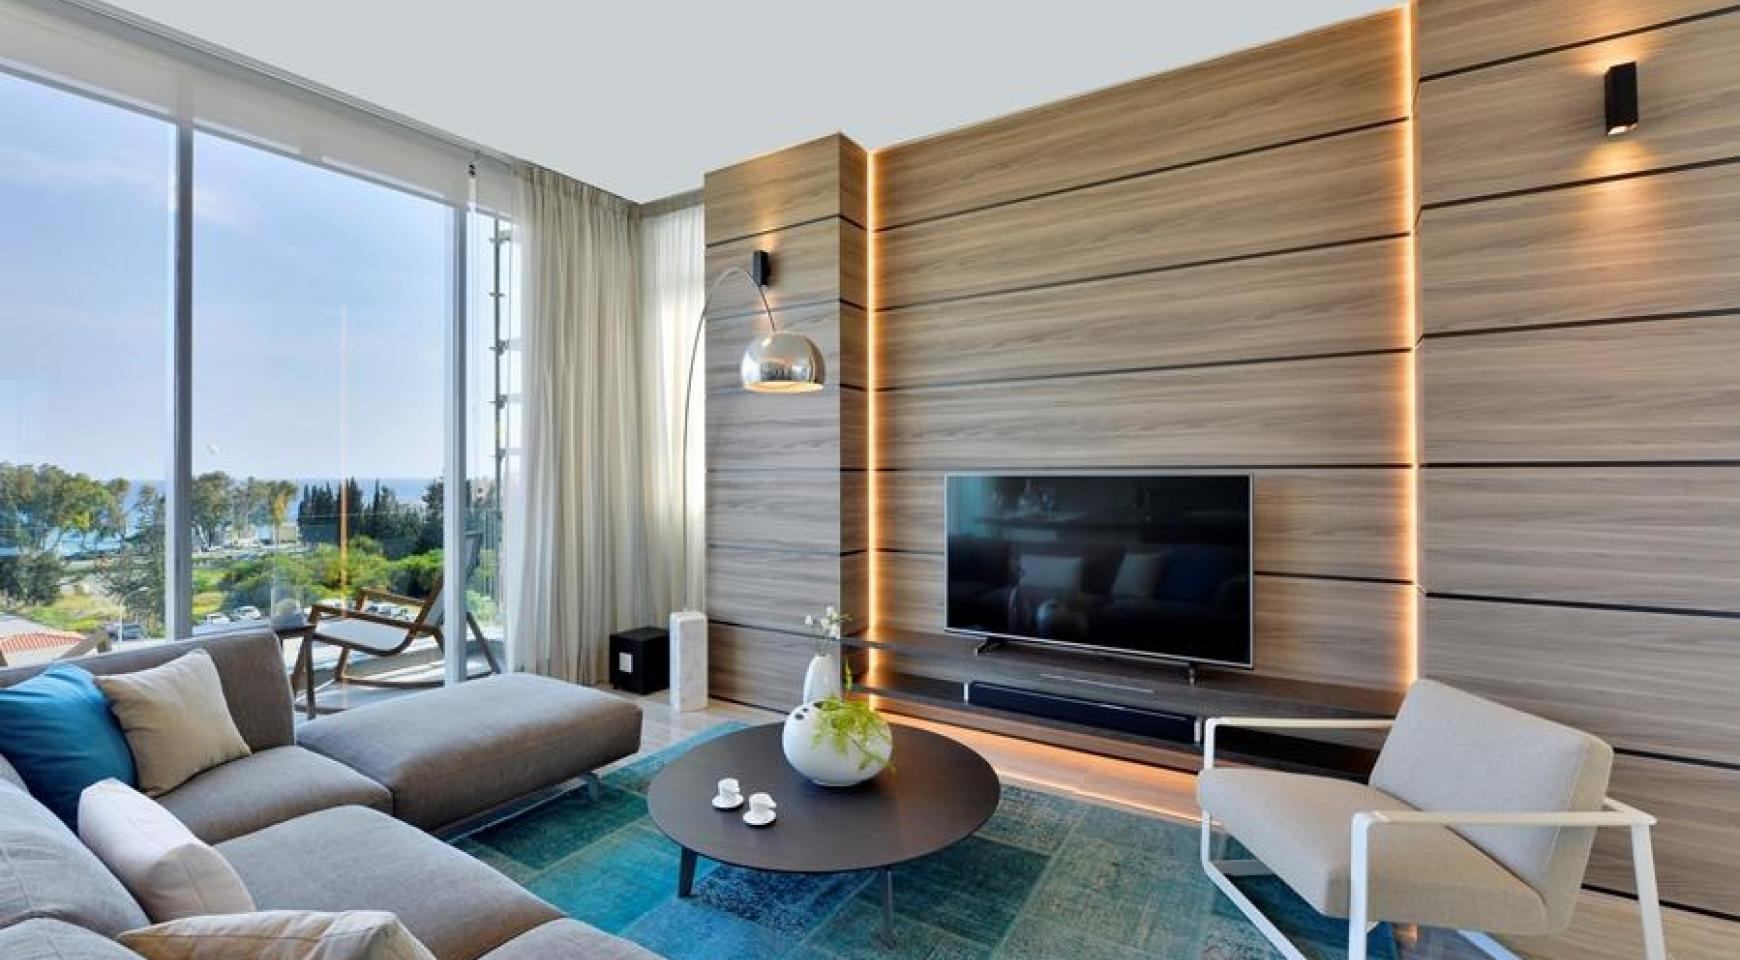 Elite 3 Bedroom Apartment within a New Complex near the Sea - 2